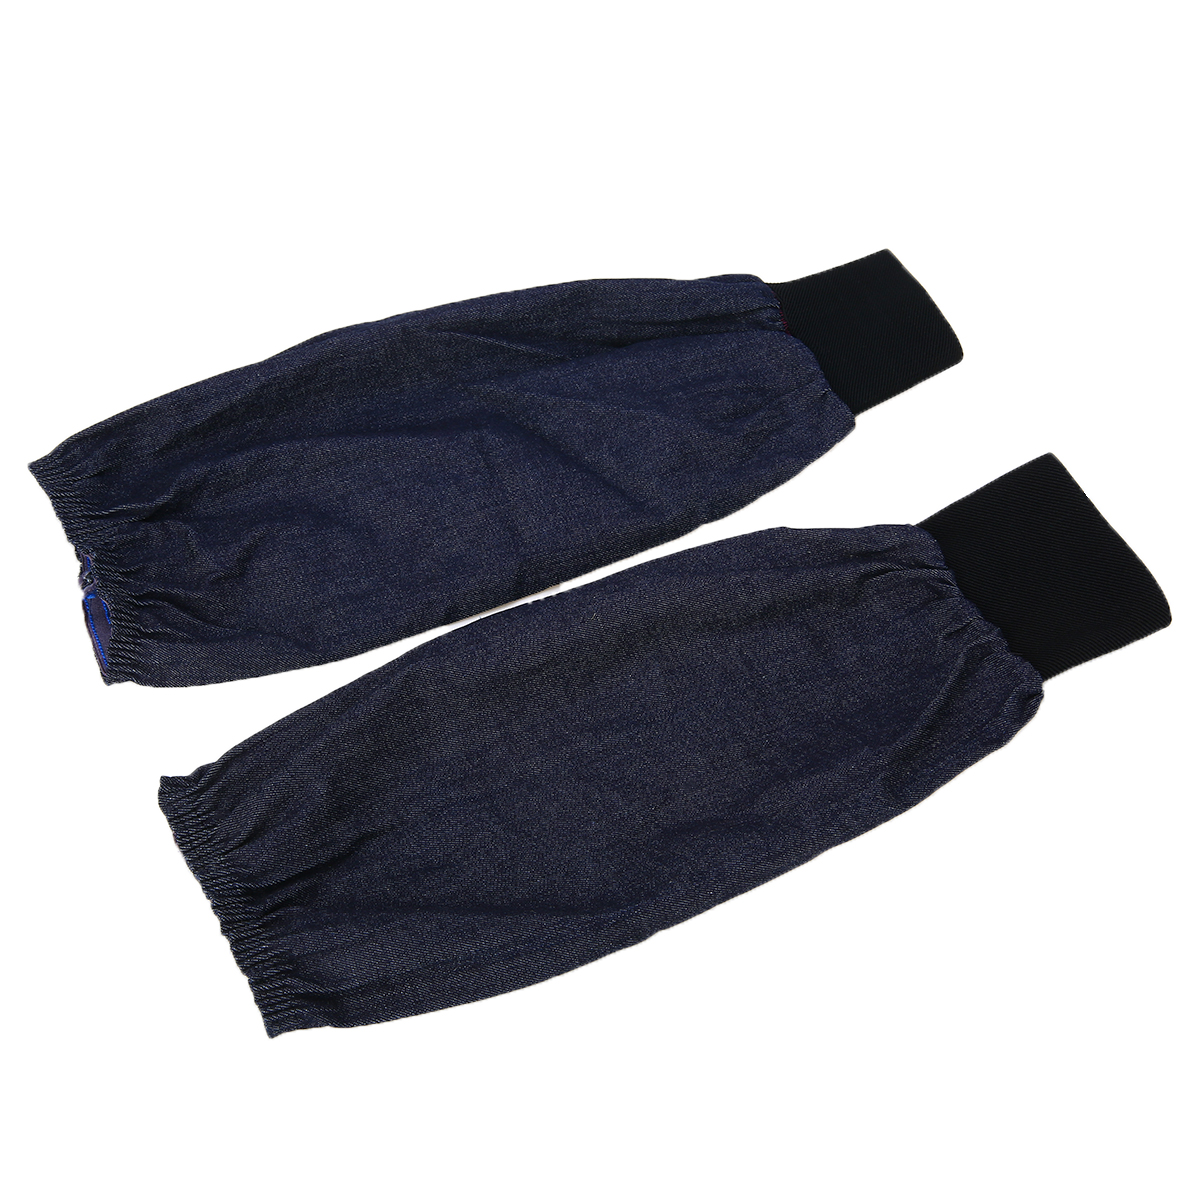 1 Pair Portable Welding Arm Sleeves Denim Working Sleeves Cut Resistant Heat Protection Welder Hand Arm Protective Sleeves image